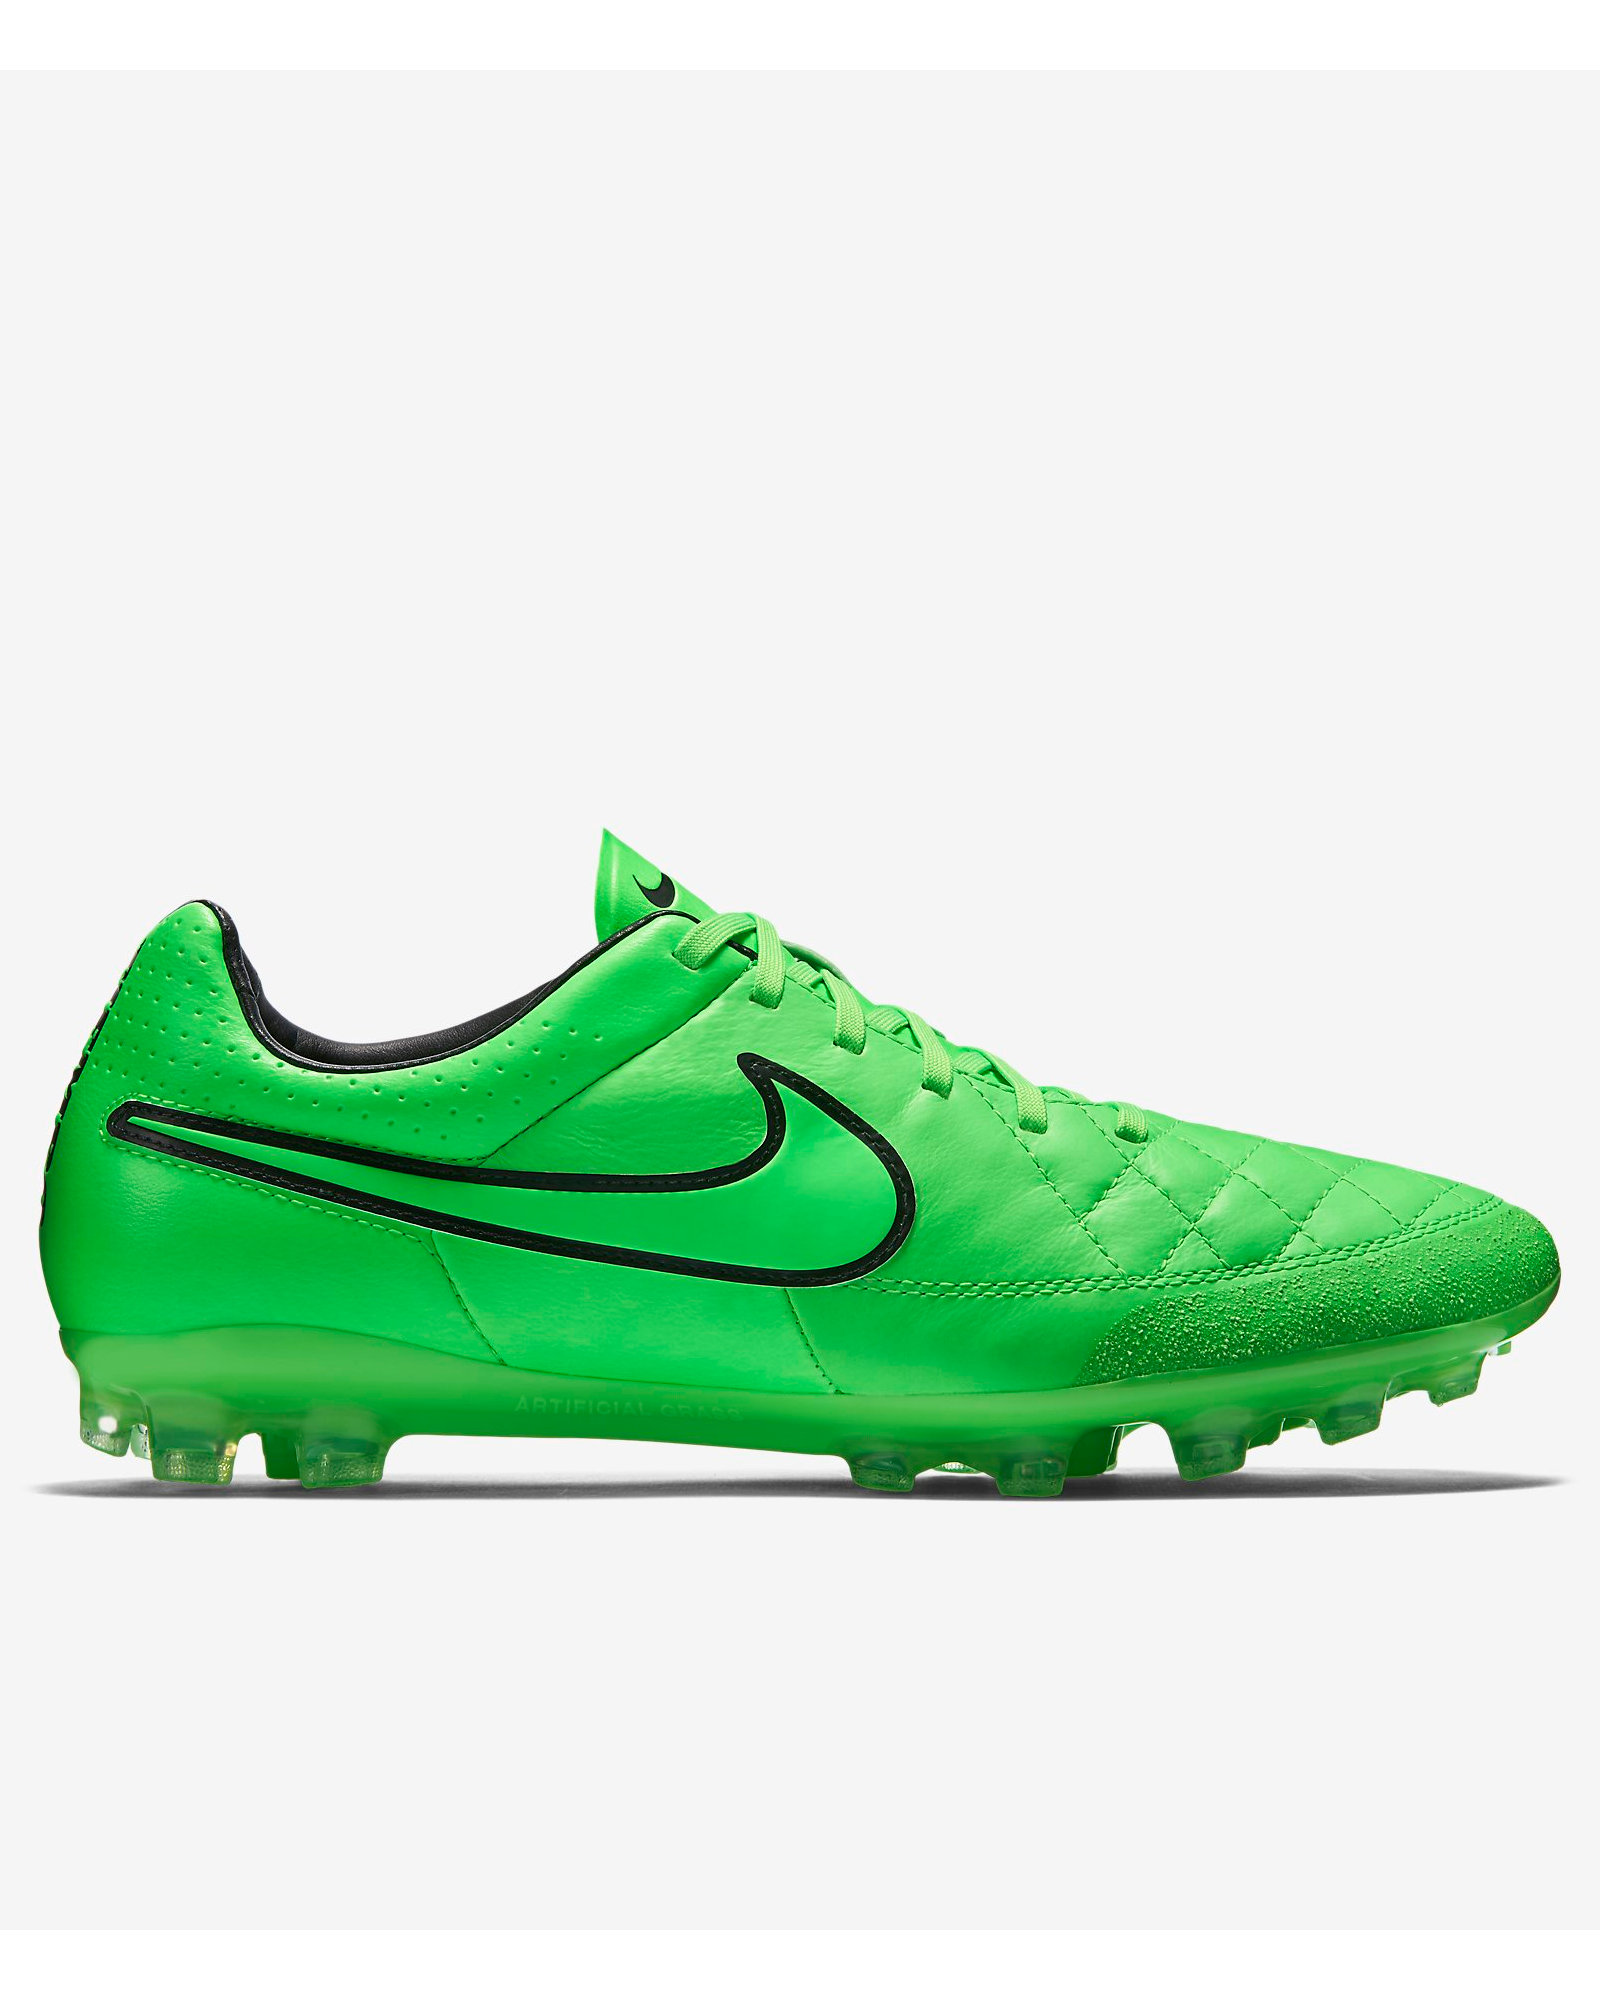 football boots shoes nike cleats tiempo green legacy ag r. Black Bedroom Furniture Sets. Home Design Ideas